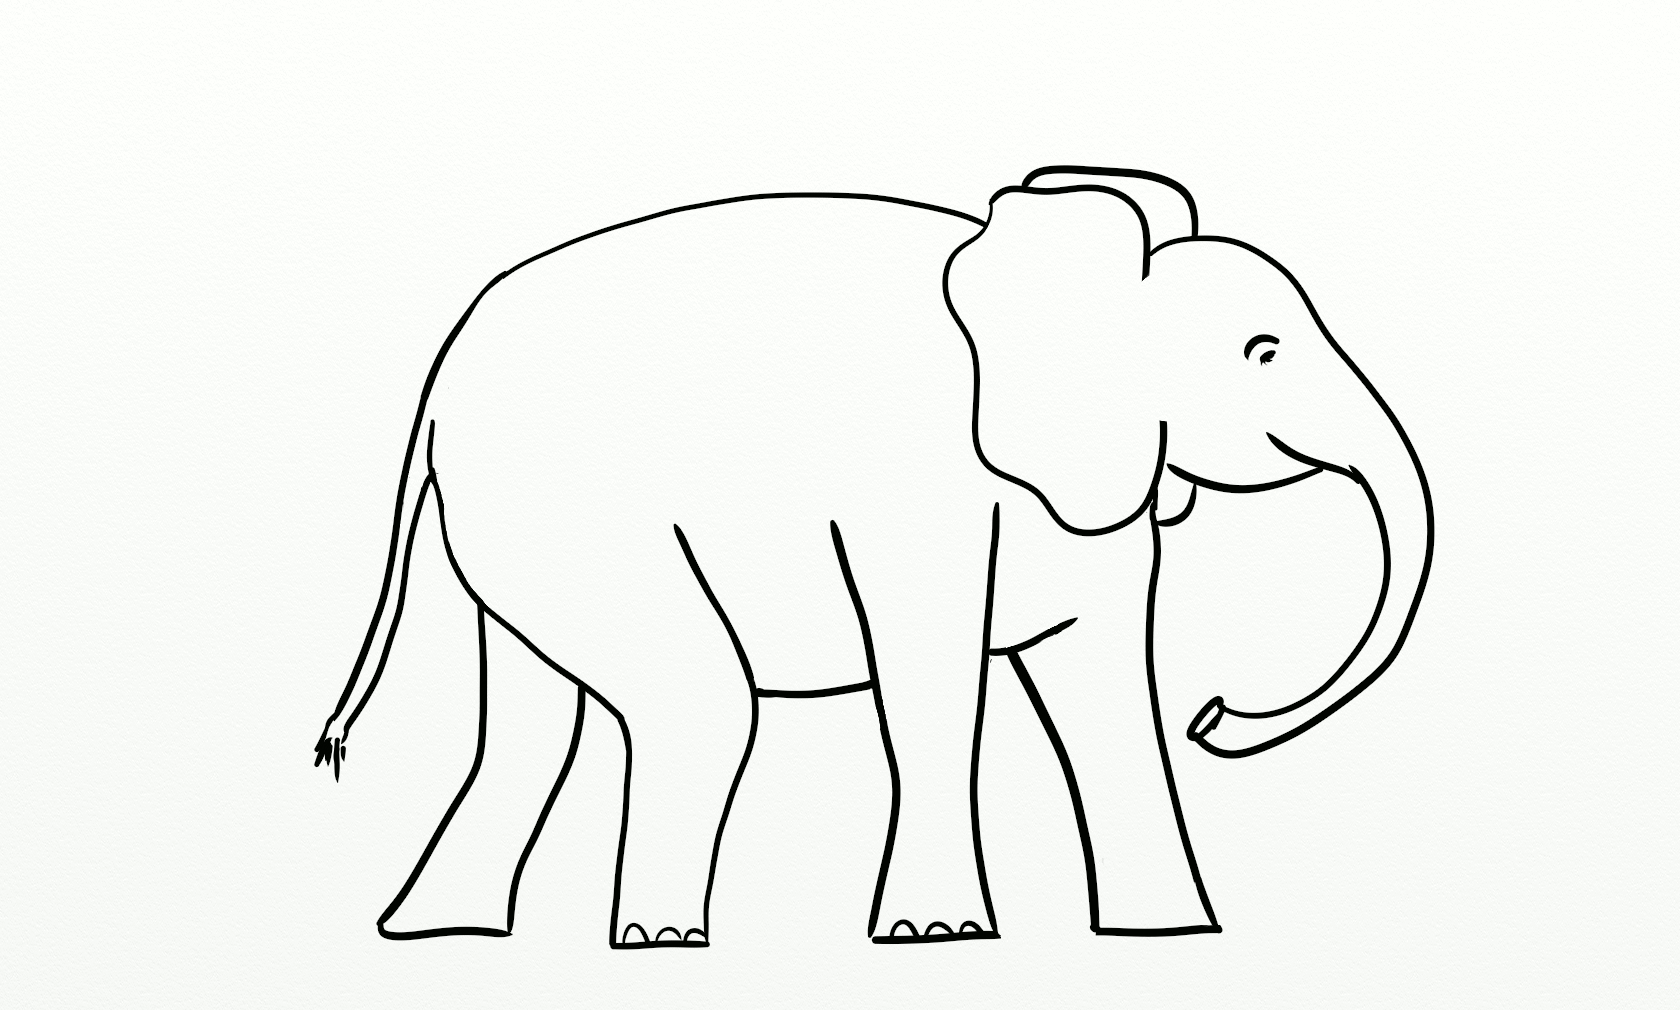 Elephant Line Drawing at GetDrawings.com | Free for personal use ...